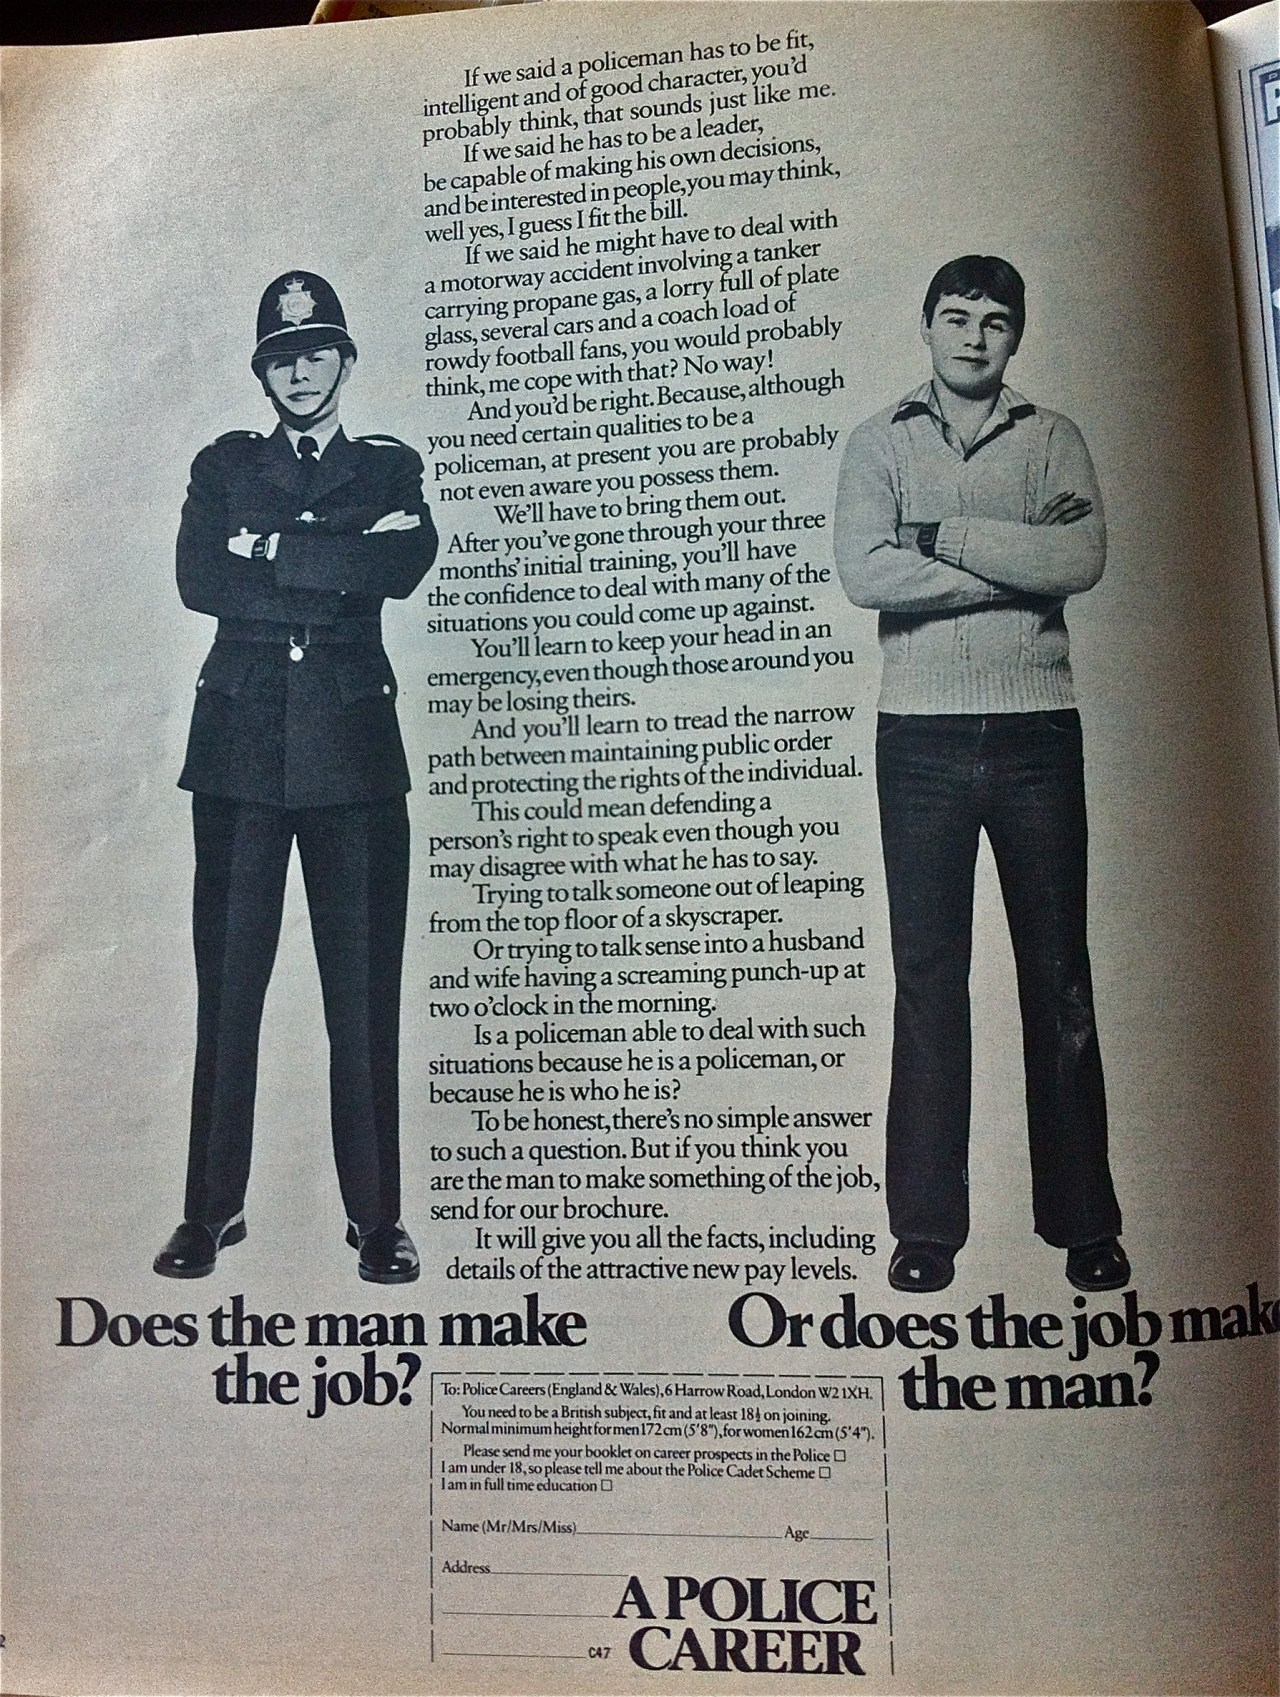 80s police ad